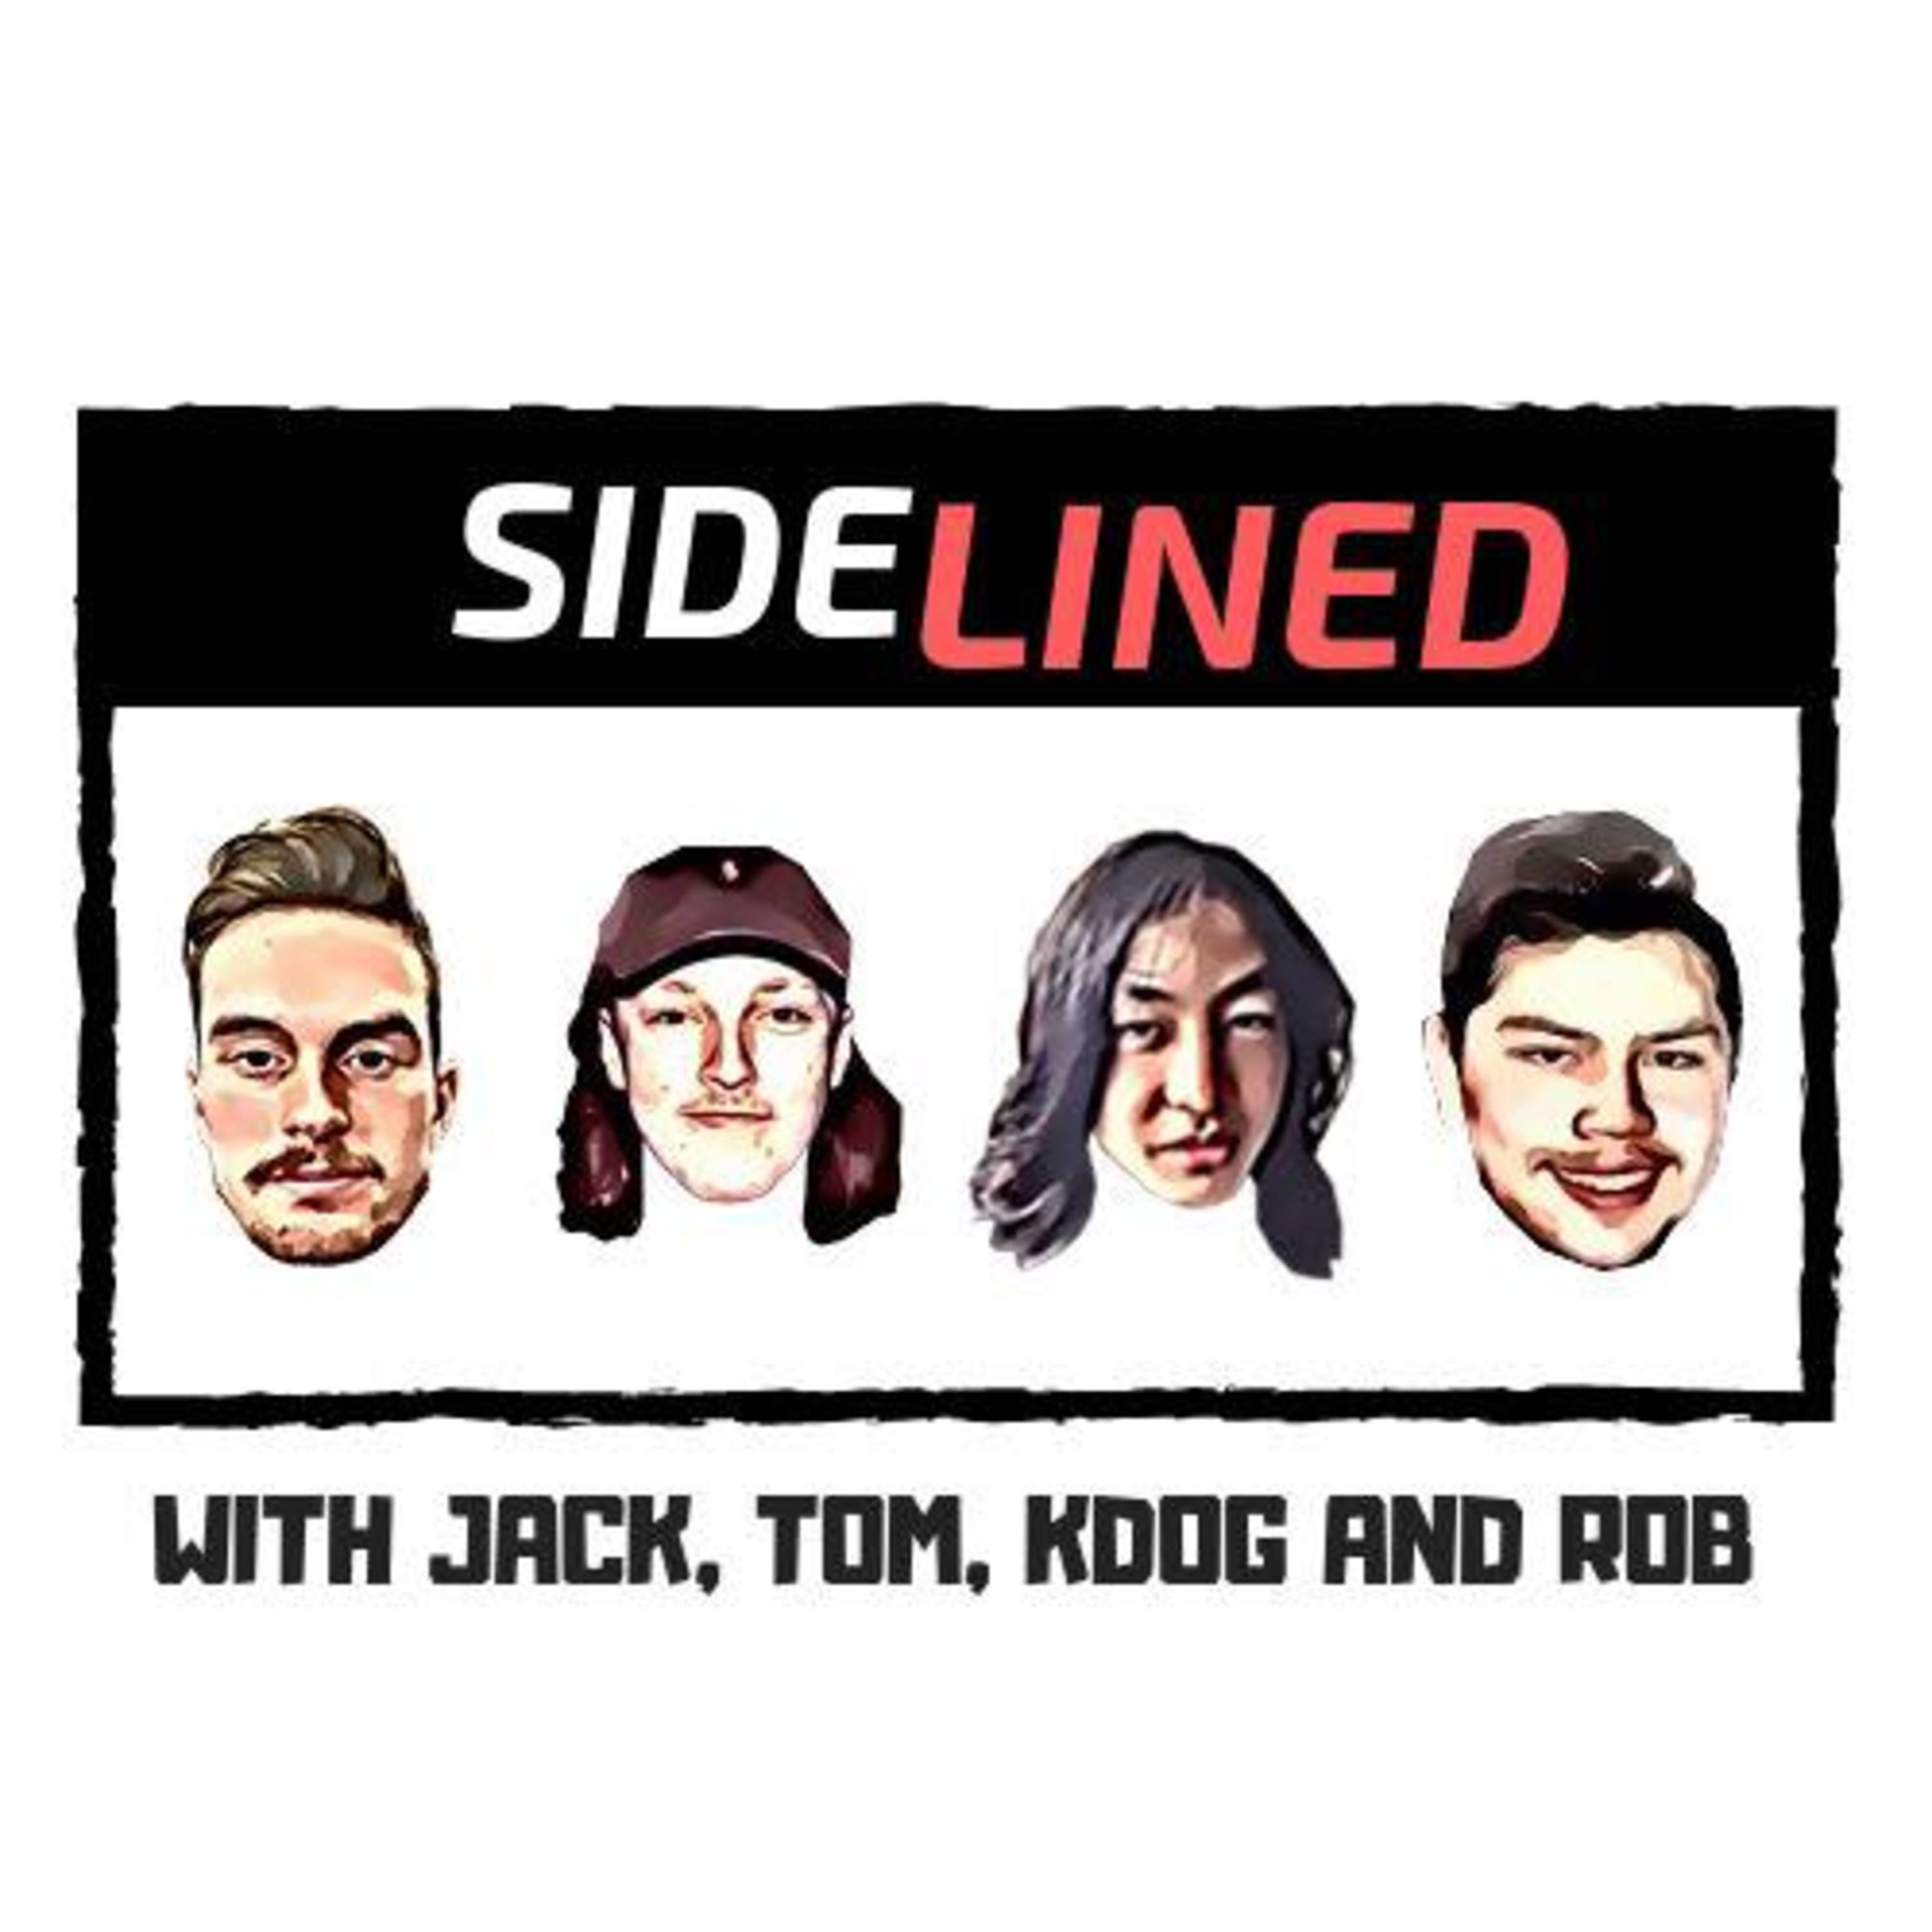 IS JACK A DOGGIES SUPERFAN? | Sidelined Podcast | S3E6